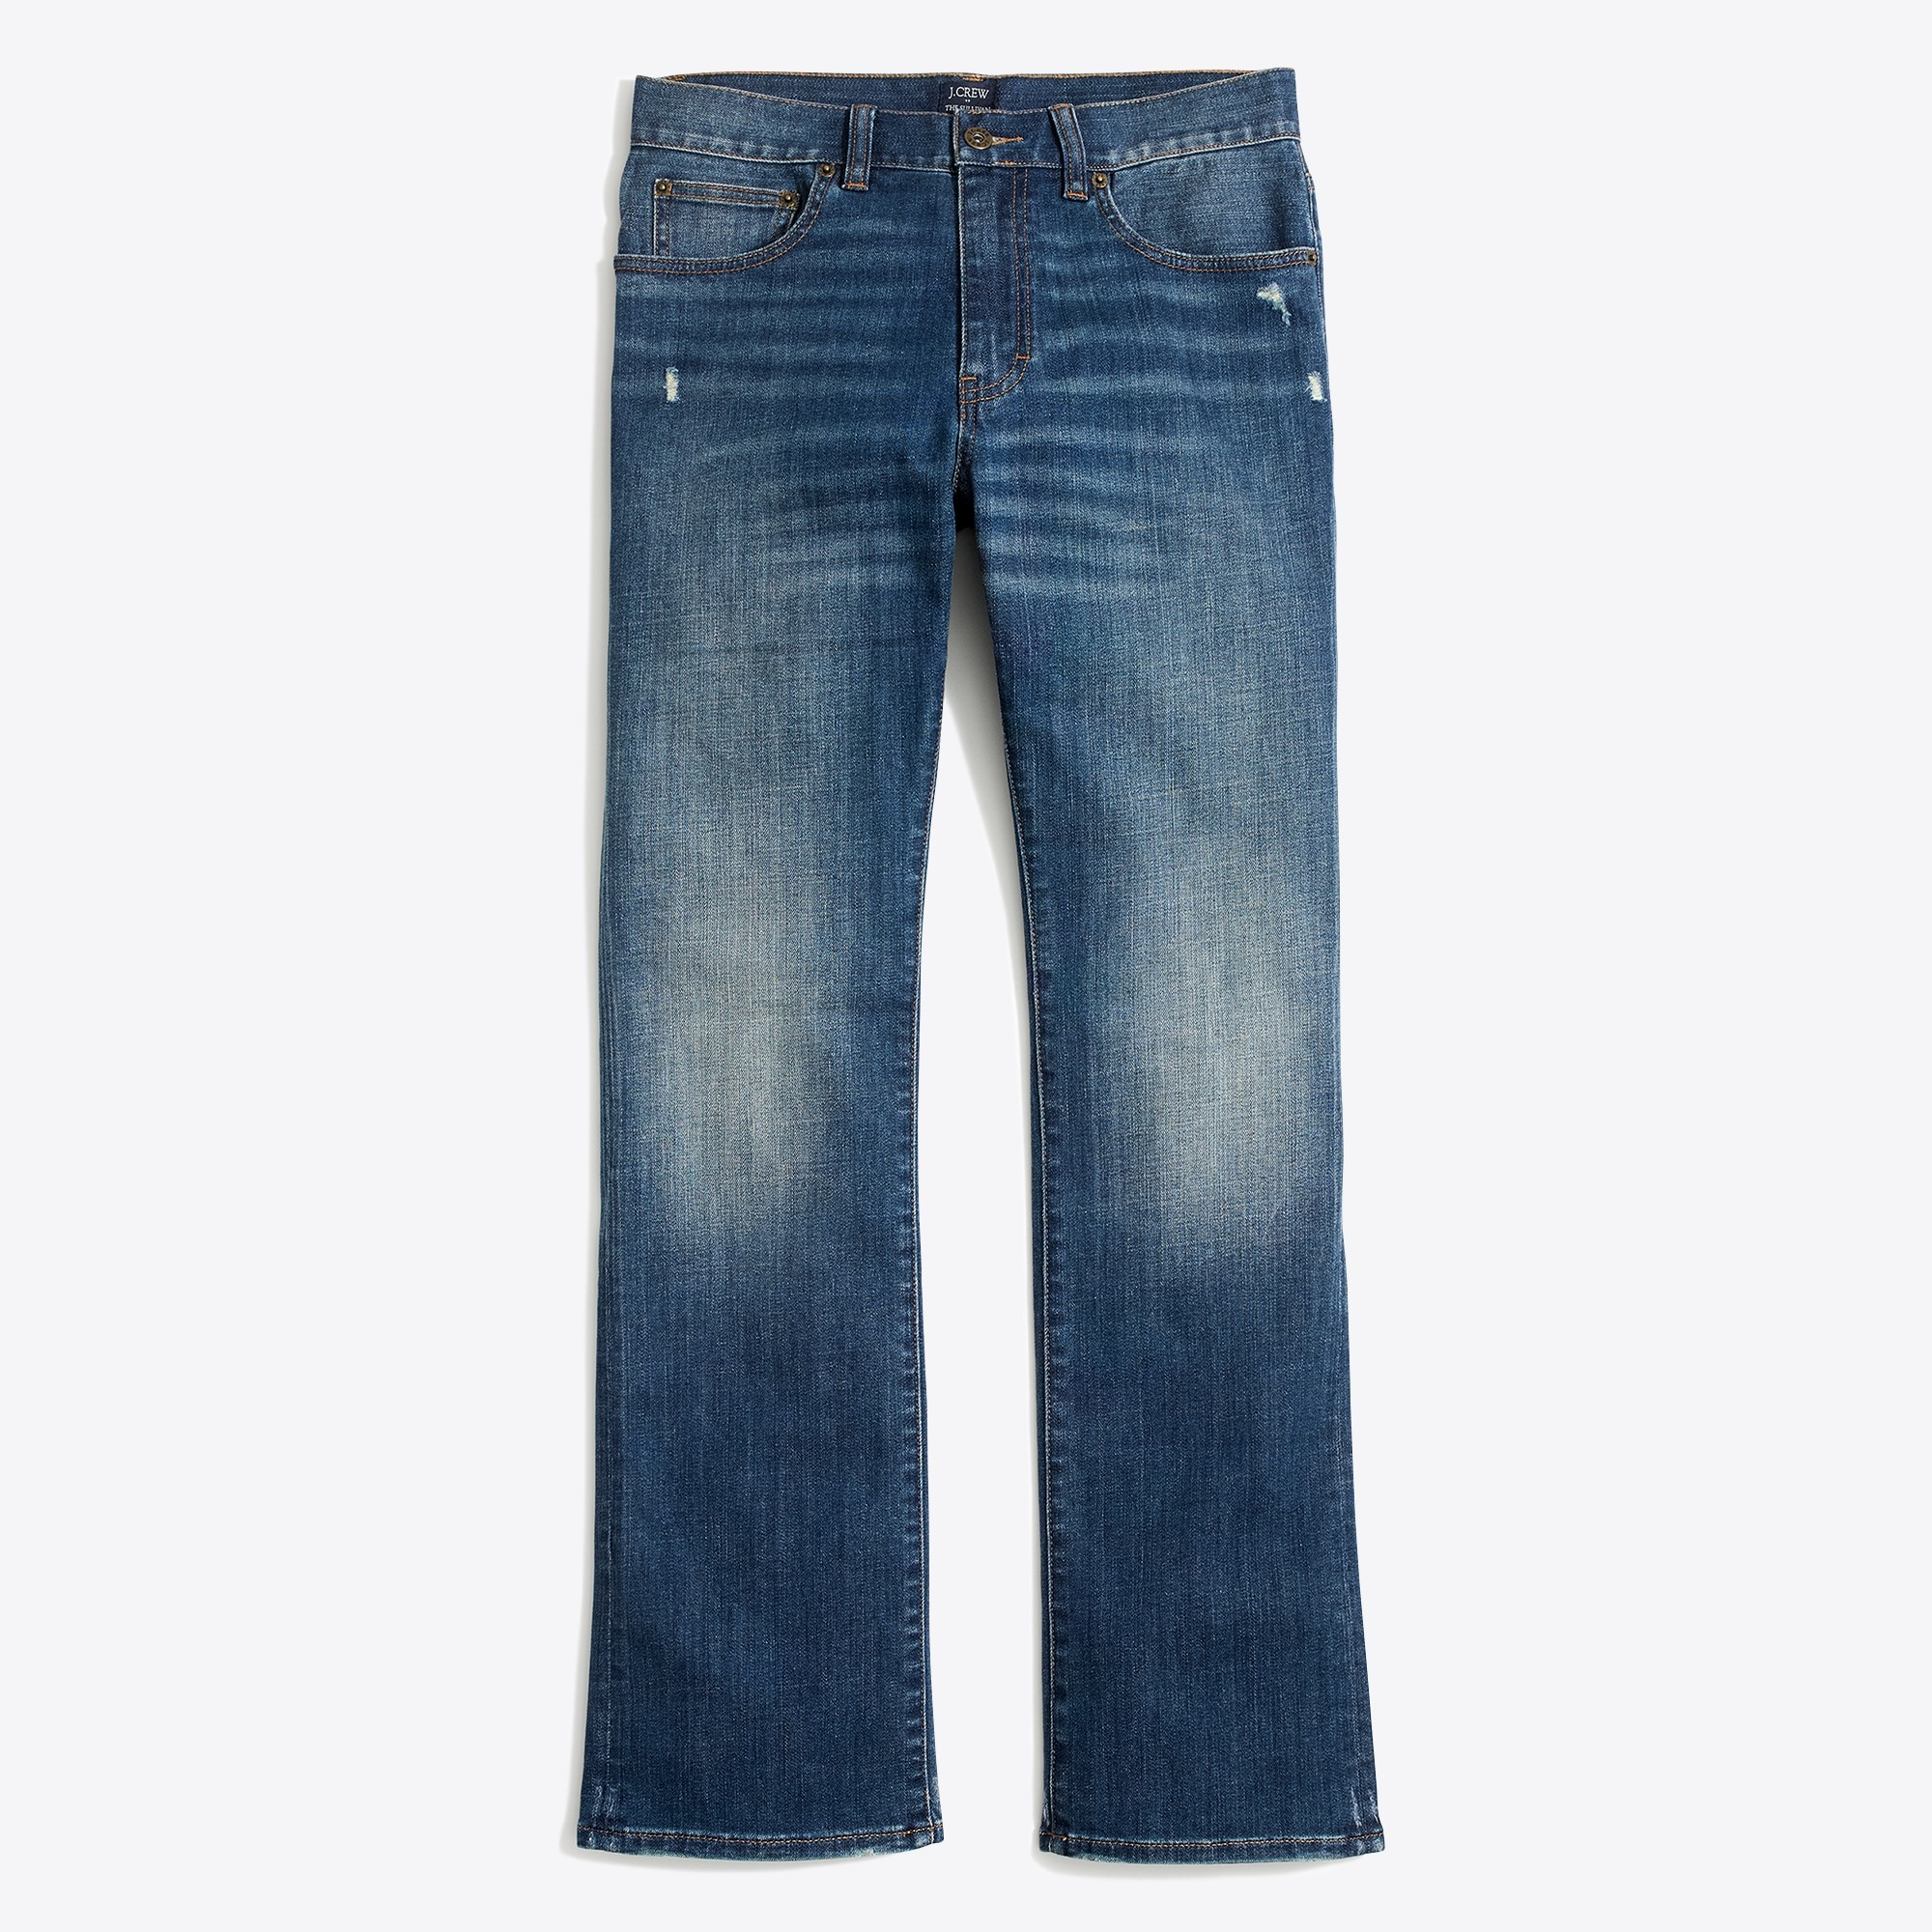 stretch sullivan jean in austin wash : factorymen bootcut